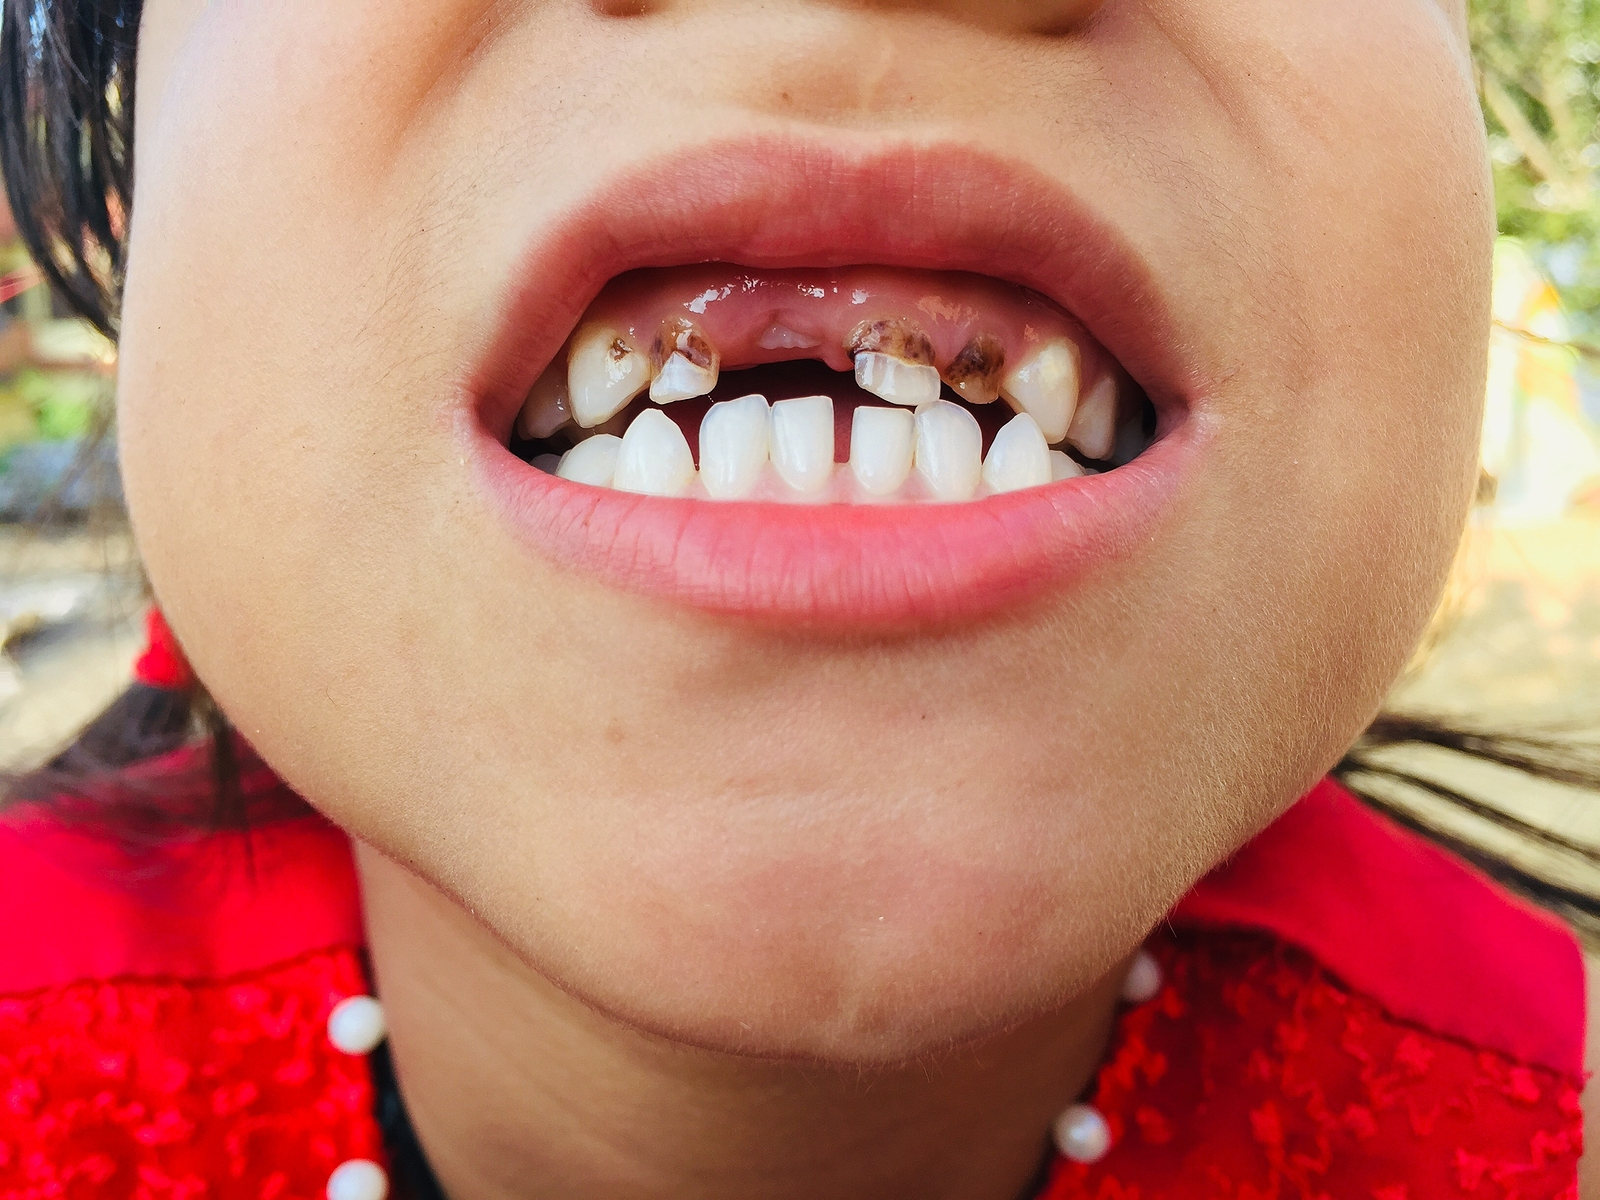 what do cavities look like picture of girl's mouth